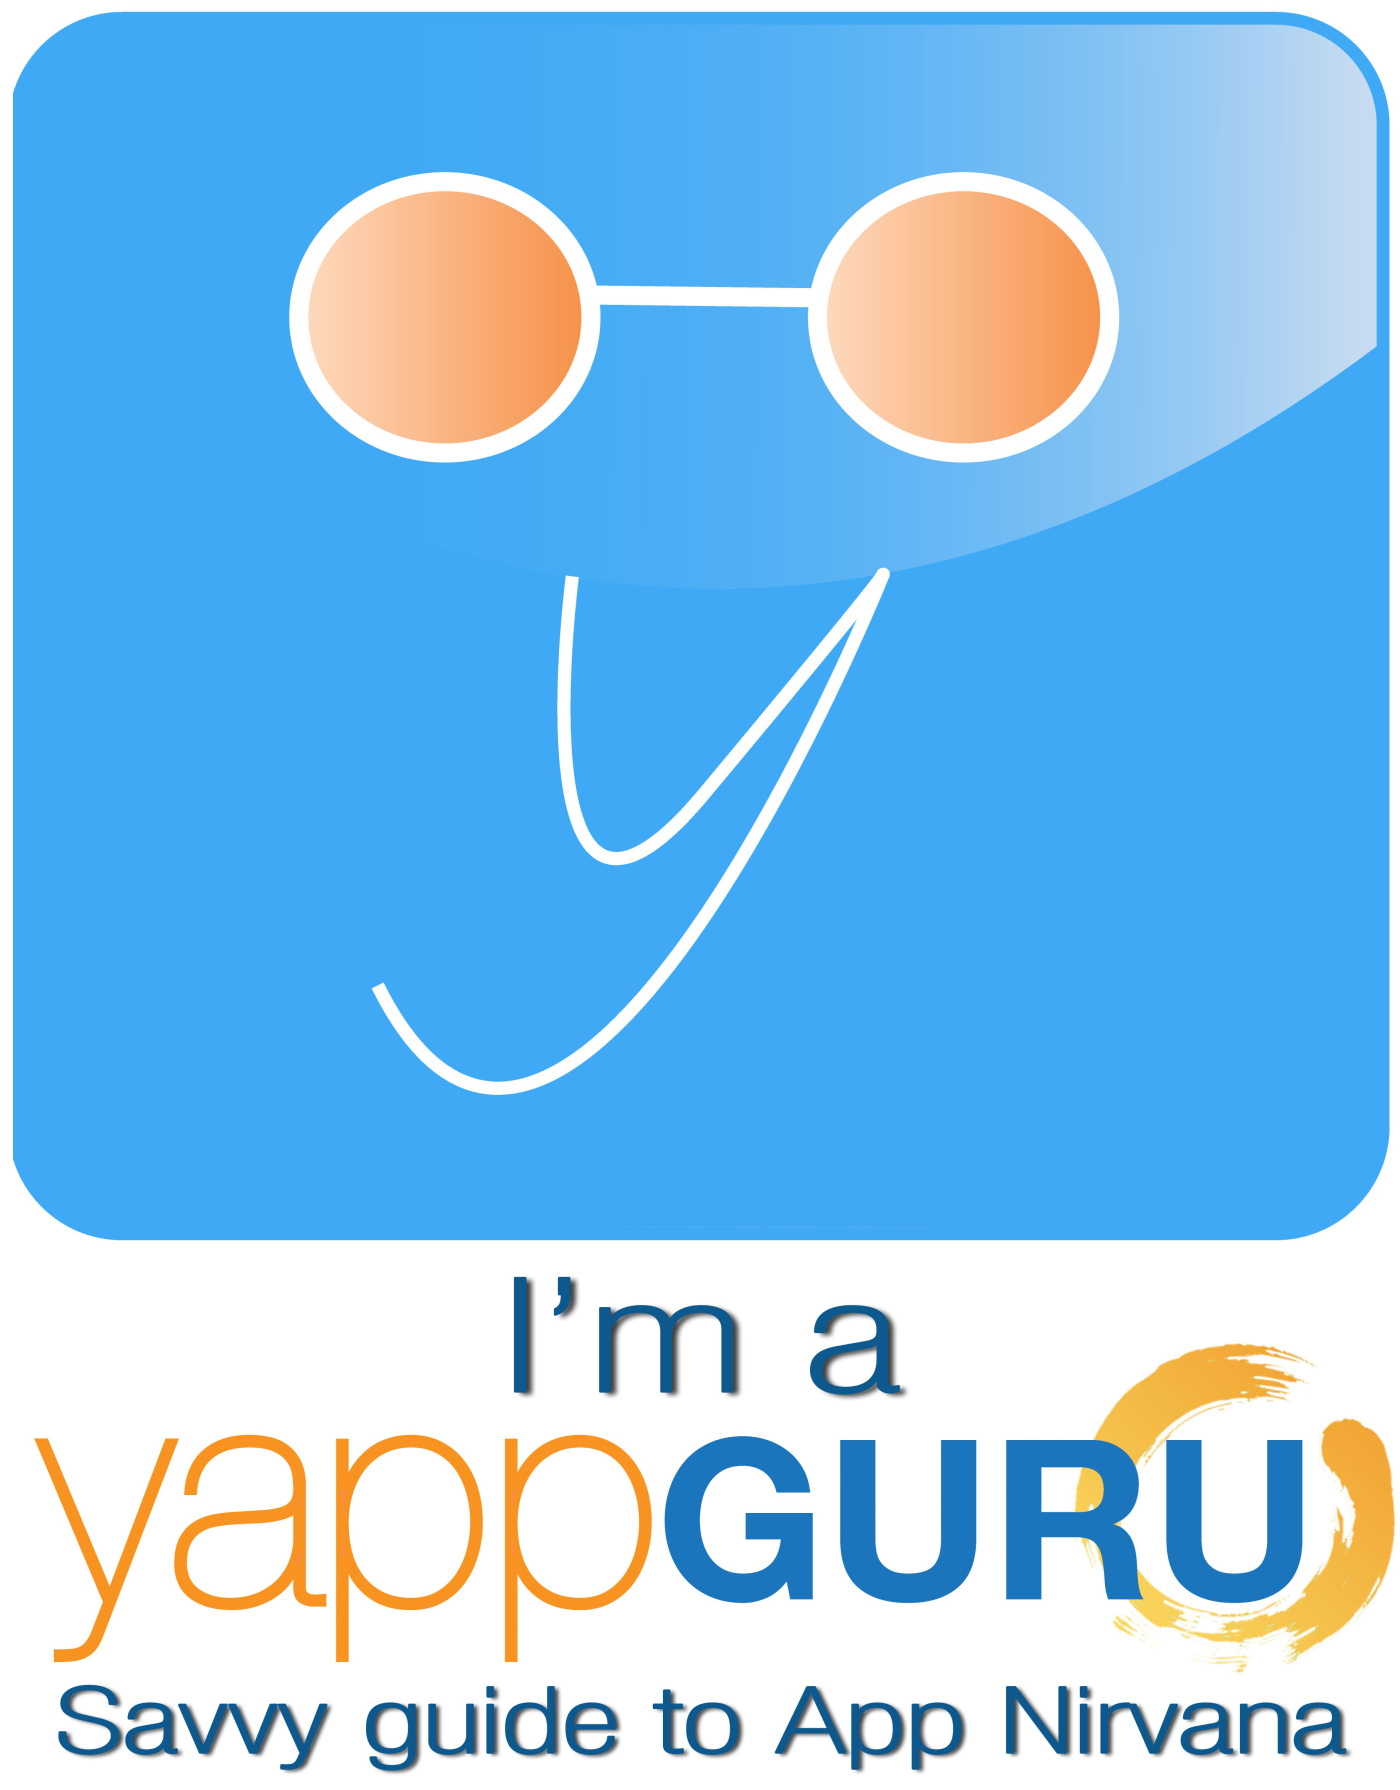 Check out Yapp Guru!